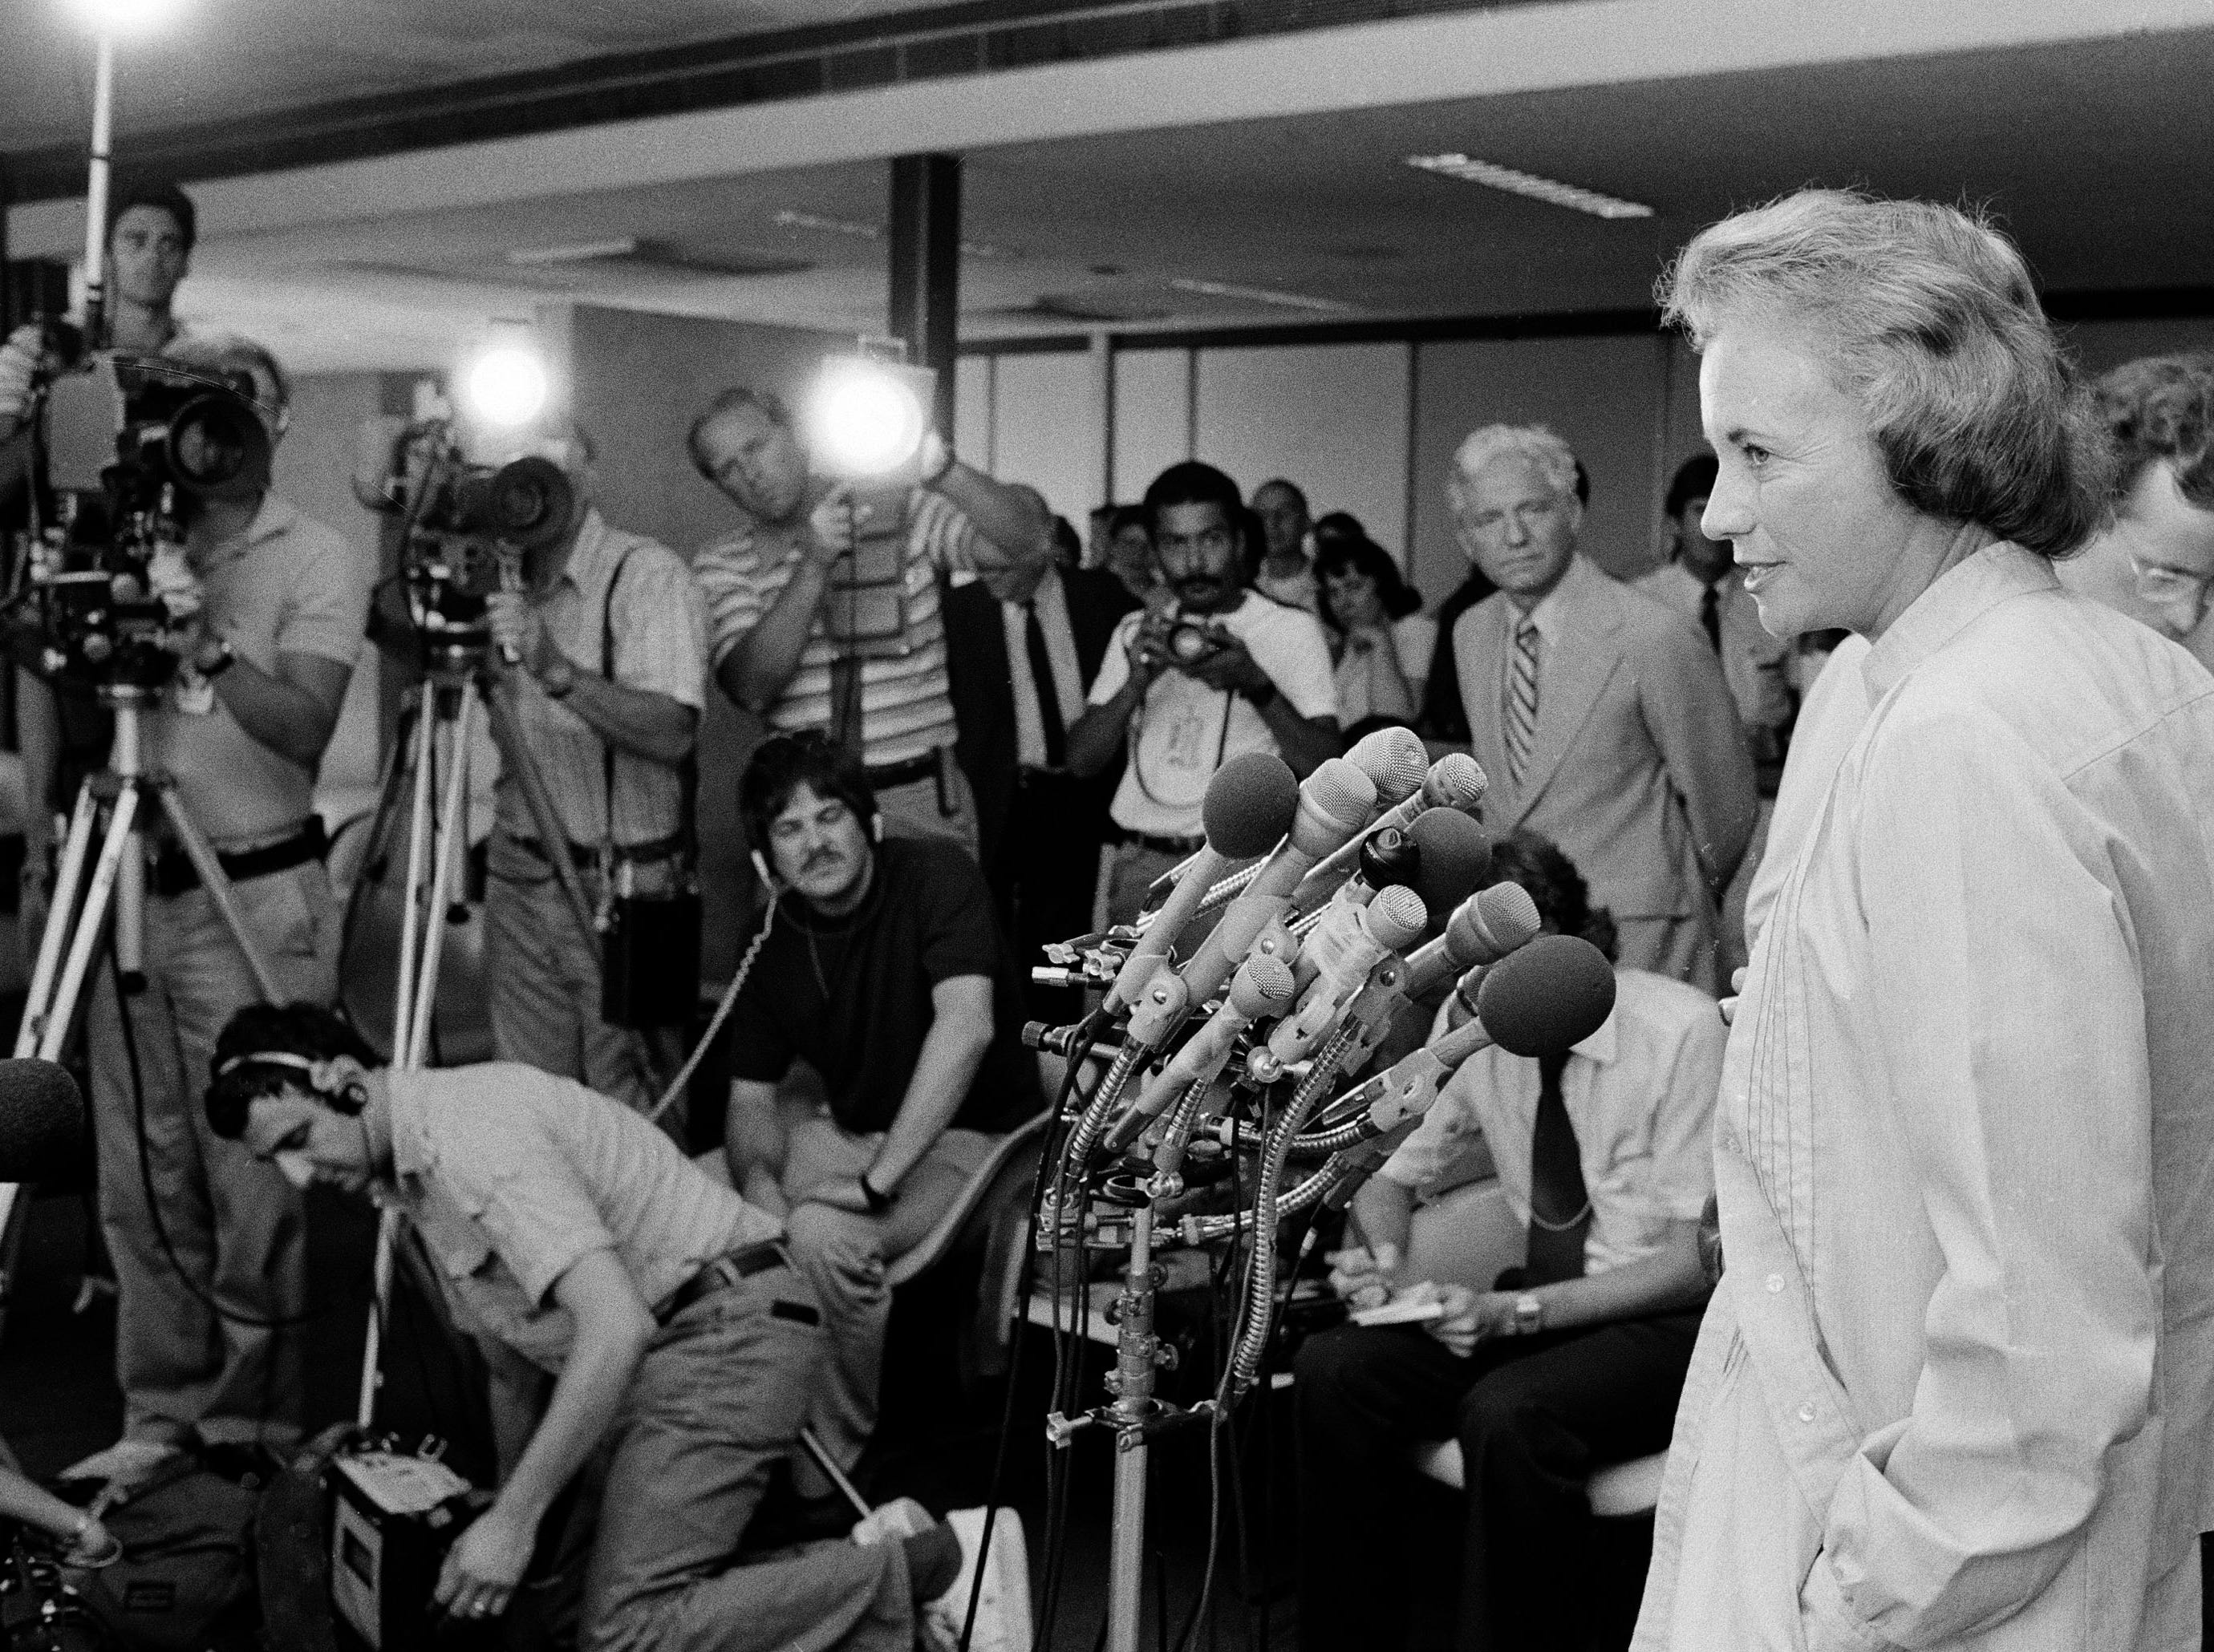 Sandra Day O'Connor, Pres. Reagan's nominee to the Supreme Court, answers questions for reporters on her arrival at Washington National Airport, July 14, 1981.